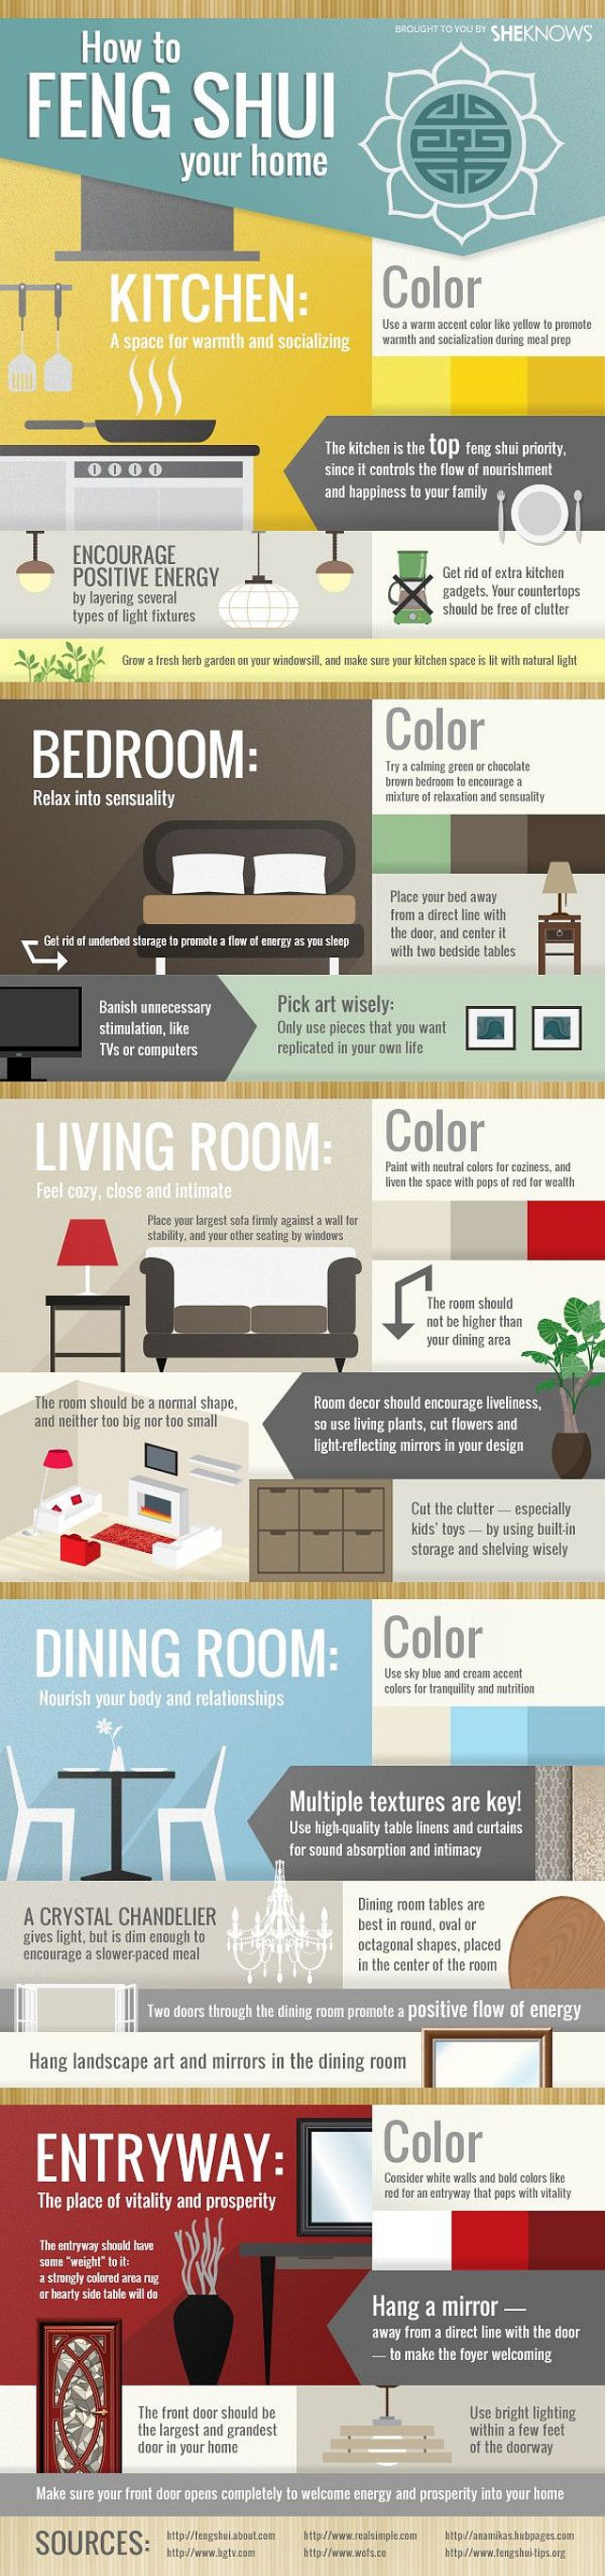 Feng shui Decorating Tips A room by room guide to feng shui your